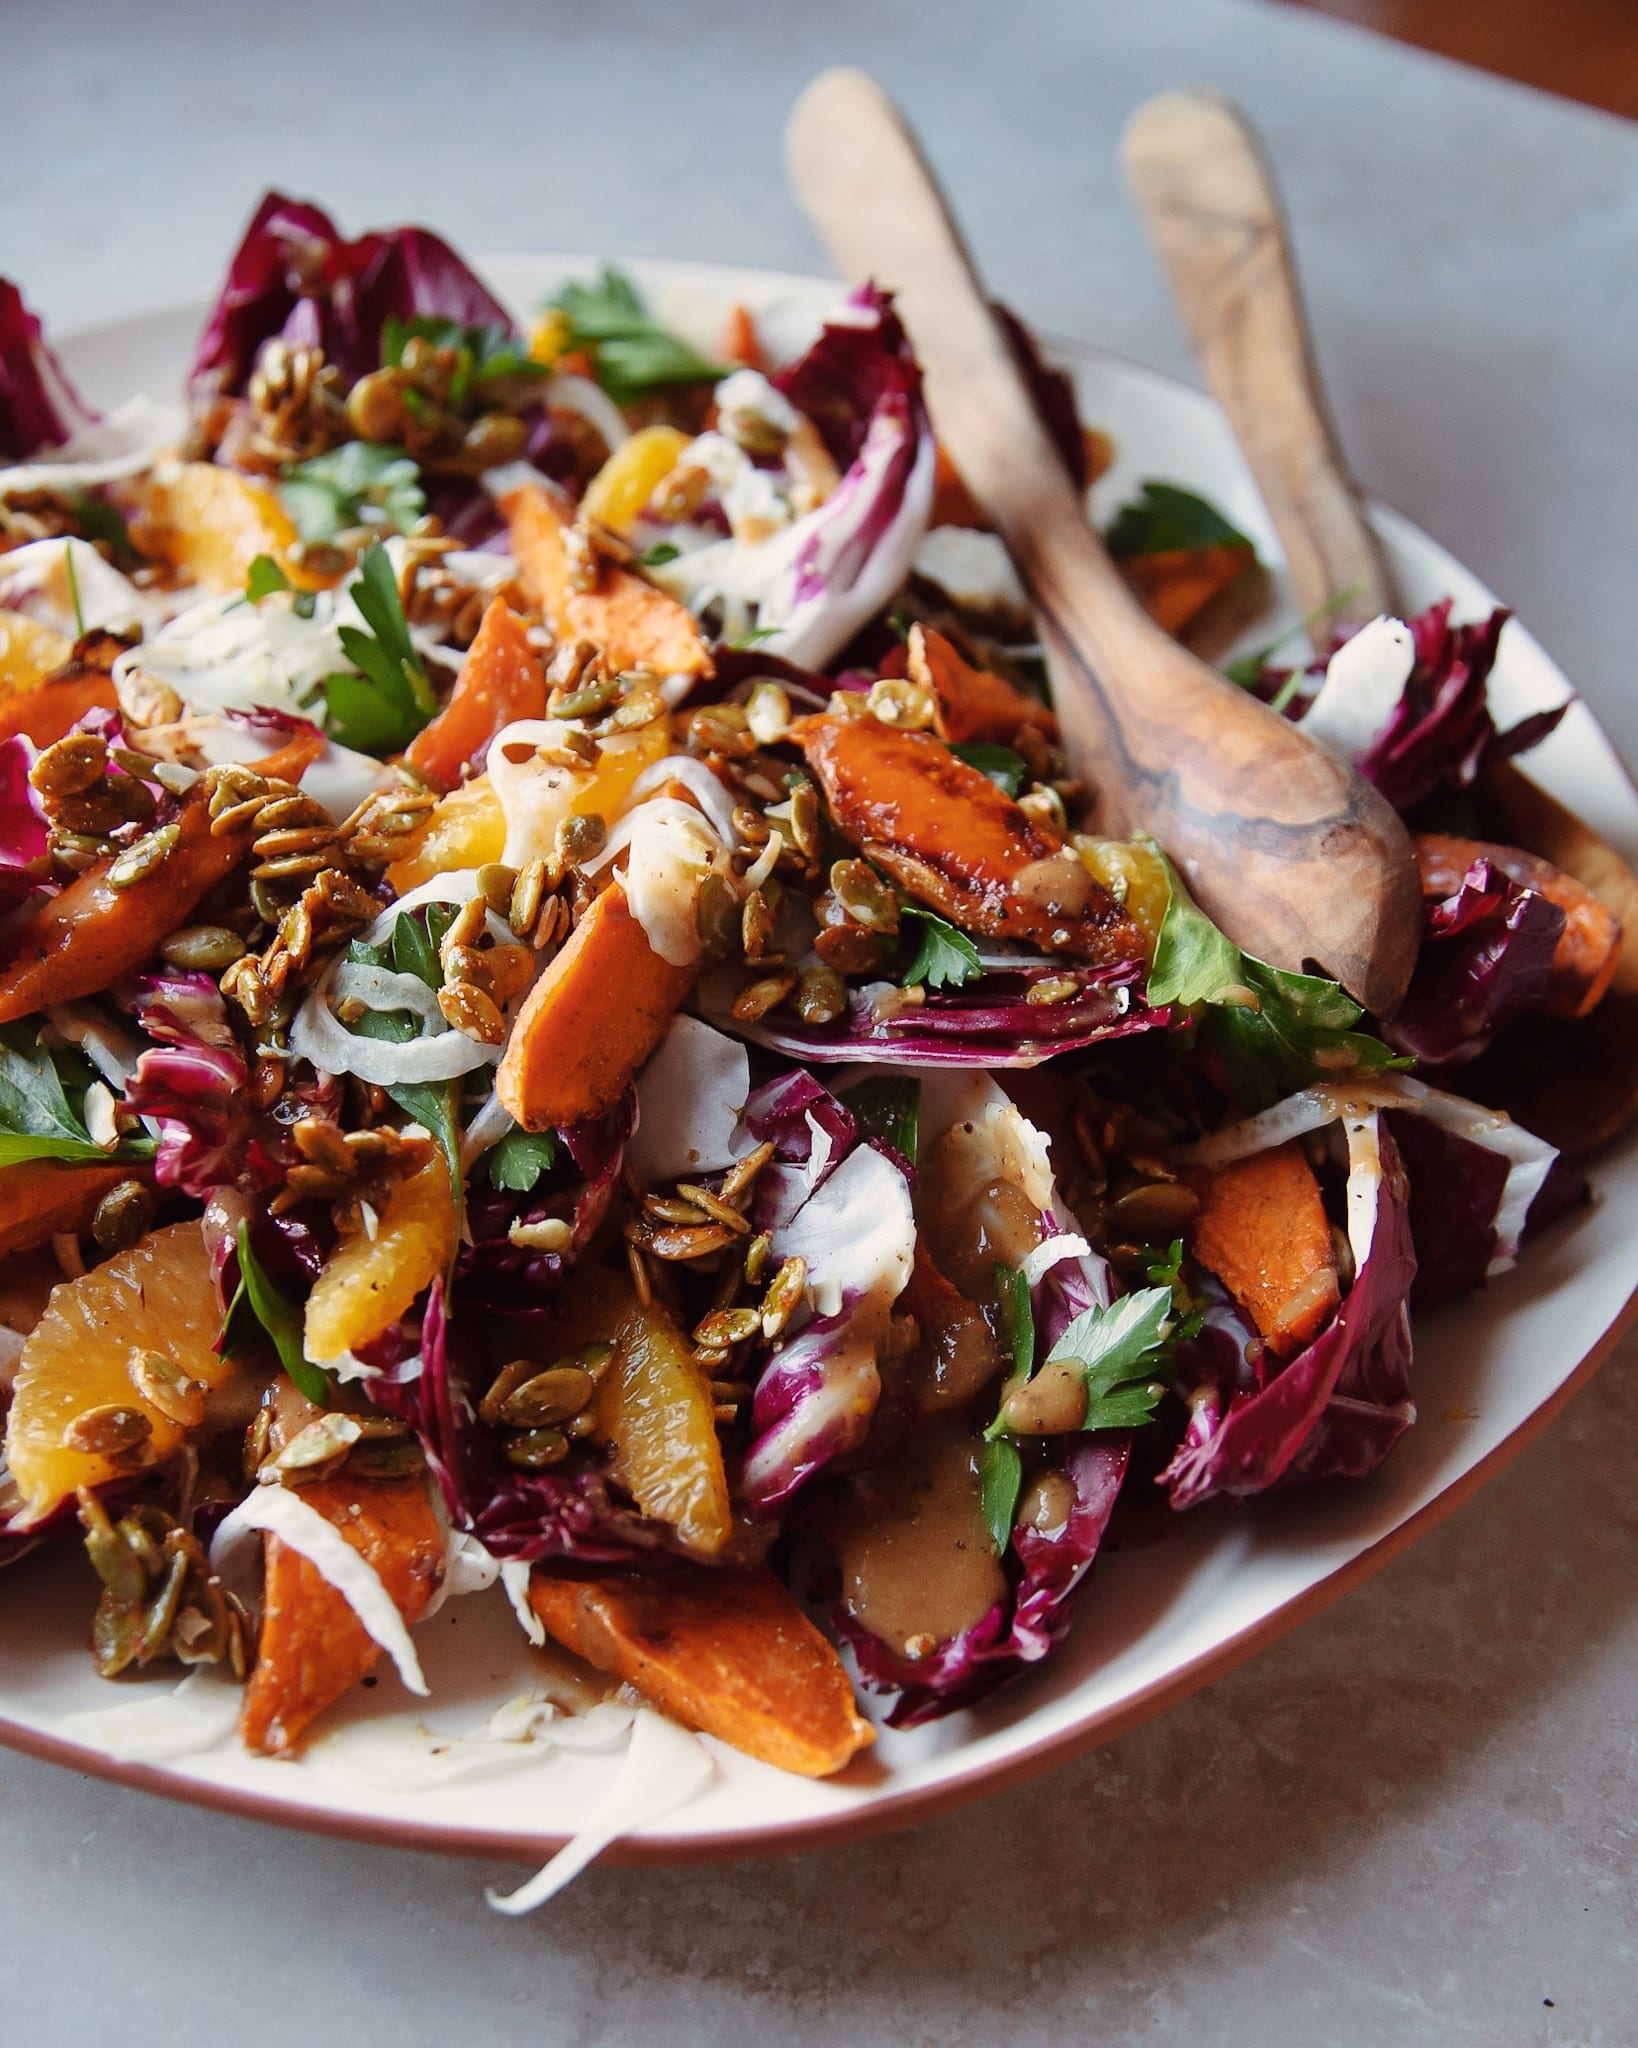 a 3/4 shot of a roasted sweet potato and radicchio salad with coriander candied pumpkin seeds, shaved fennel and orange.